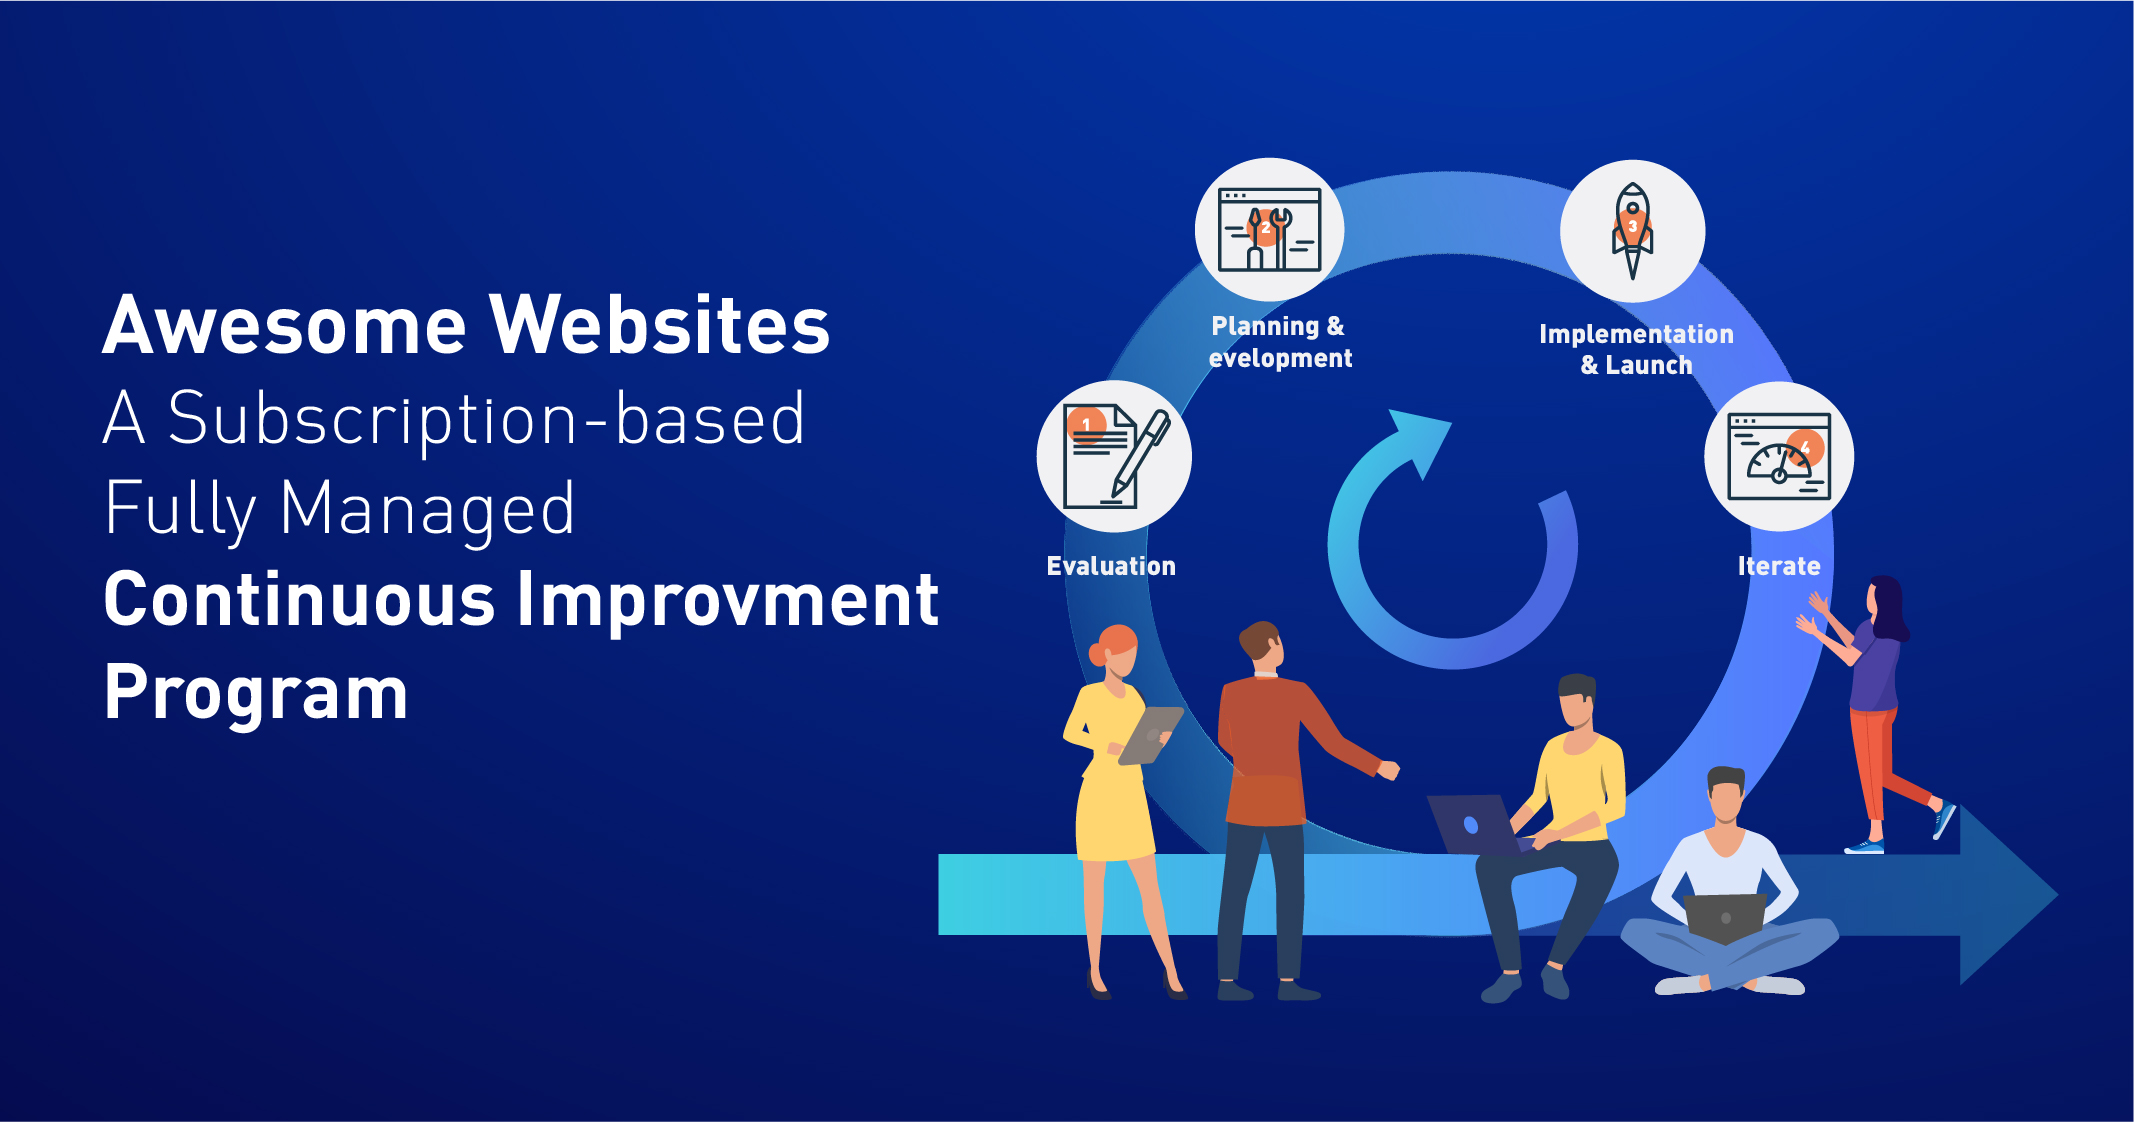 Awesome Websites : A Subscription-based Fully Managed Continuous Improvement Program